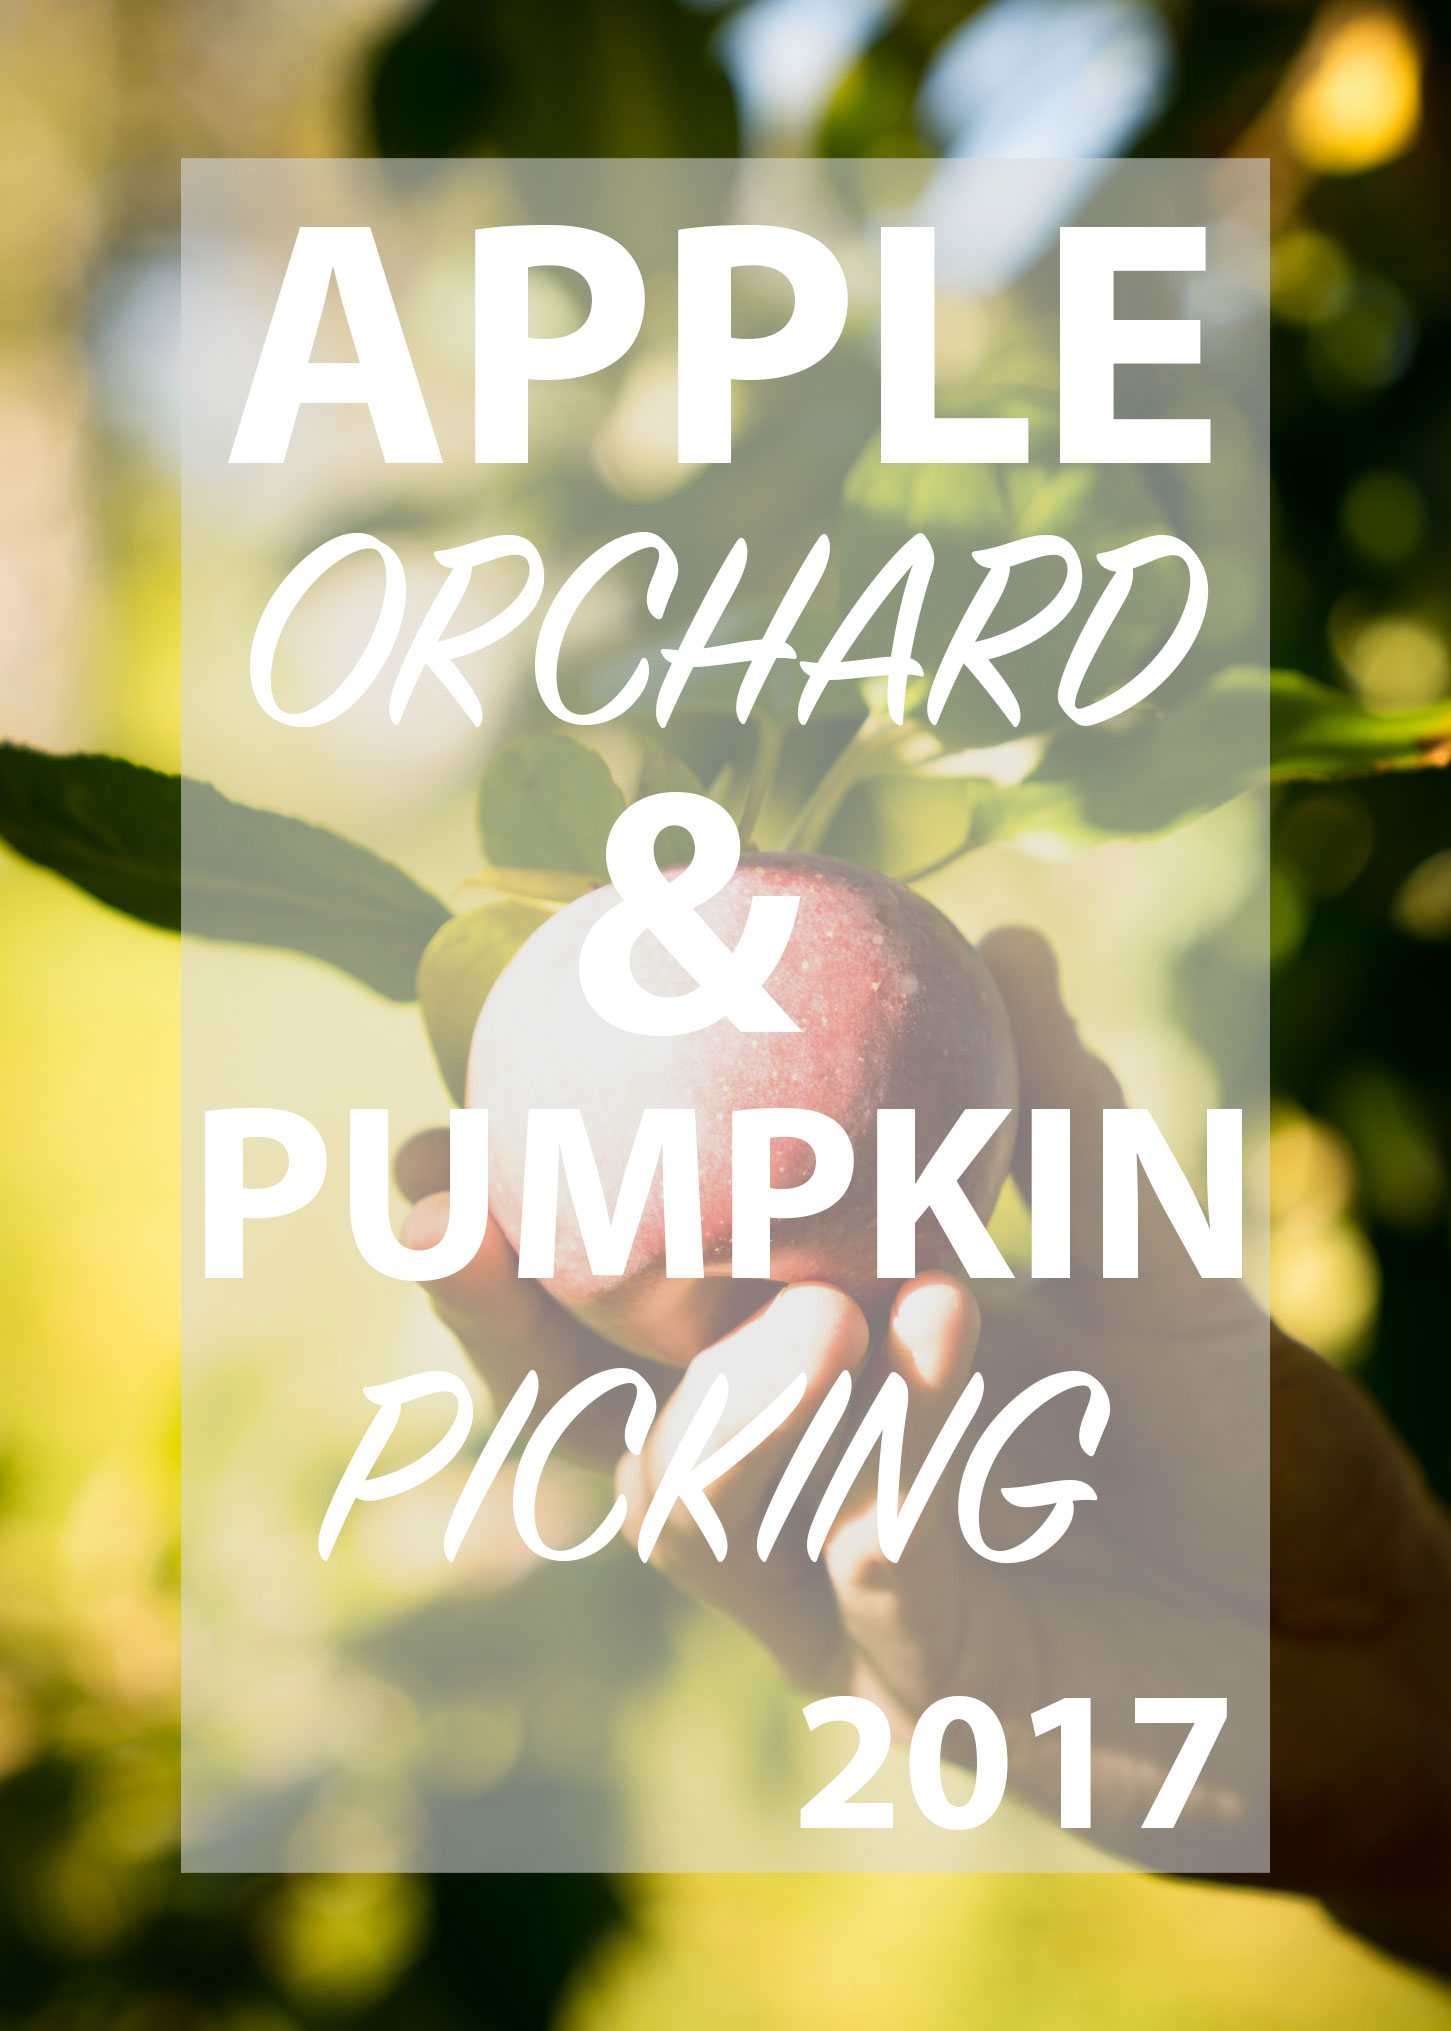 Apple Orchard & Pumpkin picking 2017